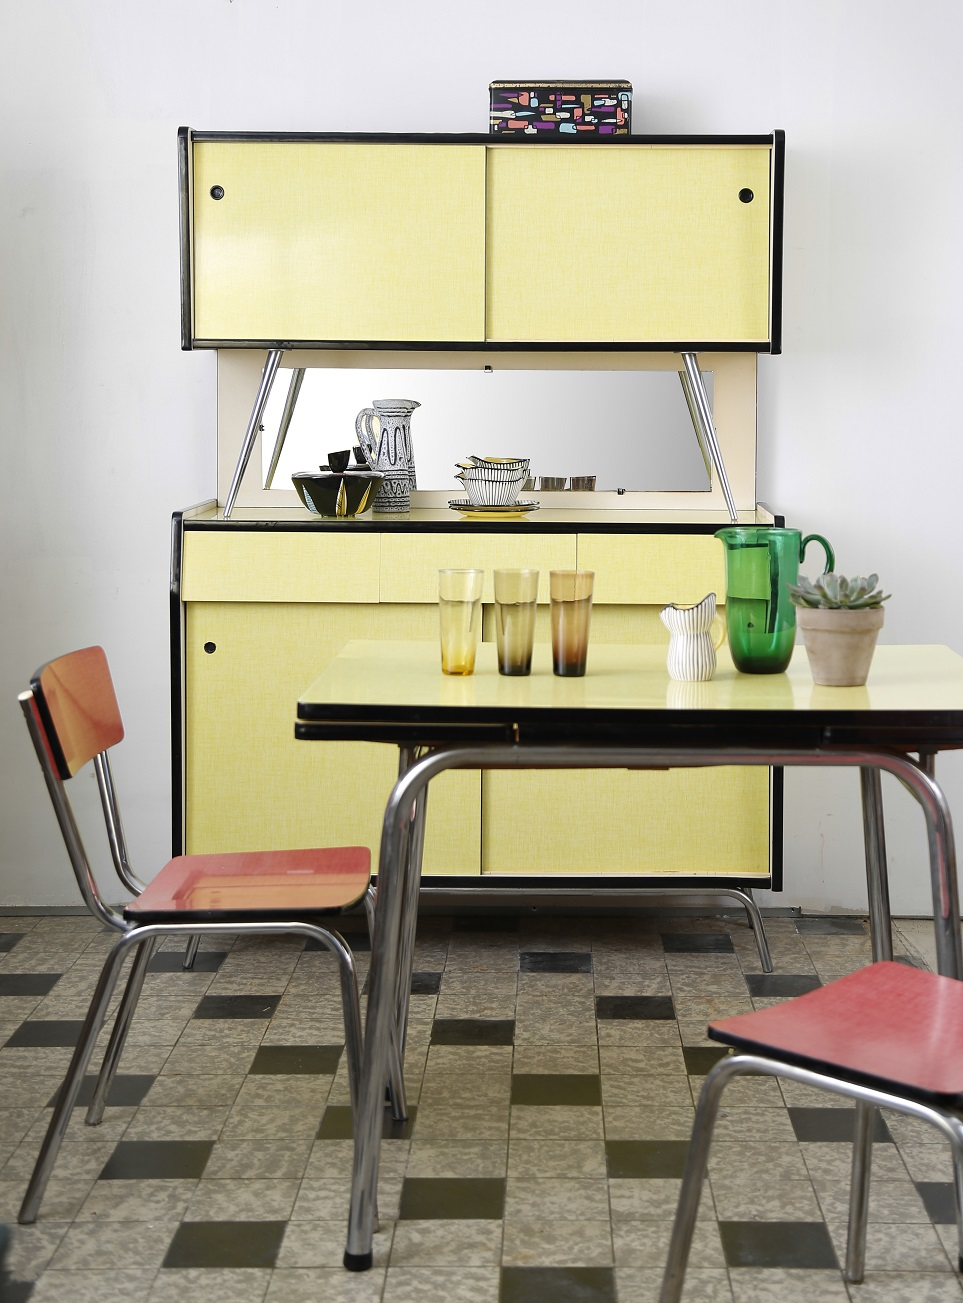 buffet et table de cuisine en formica jaune ann es 1960 broc 39 en 39 guche. Black Bedroom Furniture Sets. Home Design Ideas